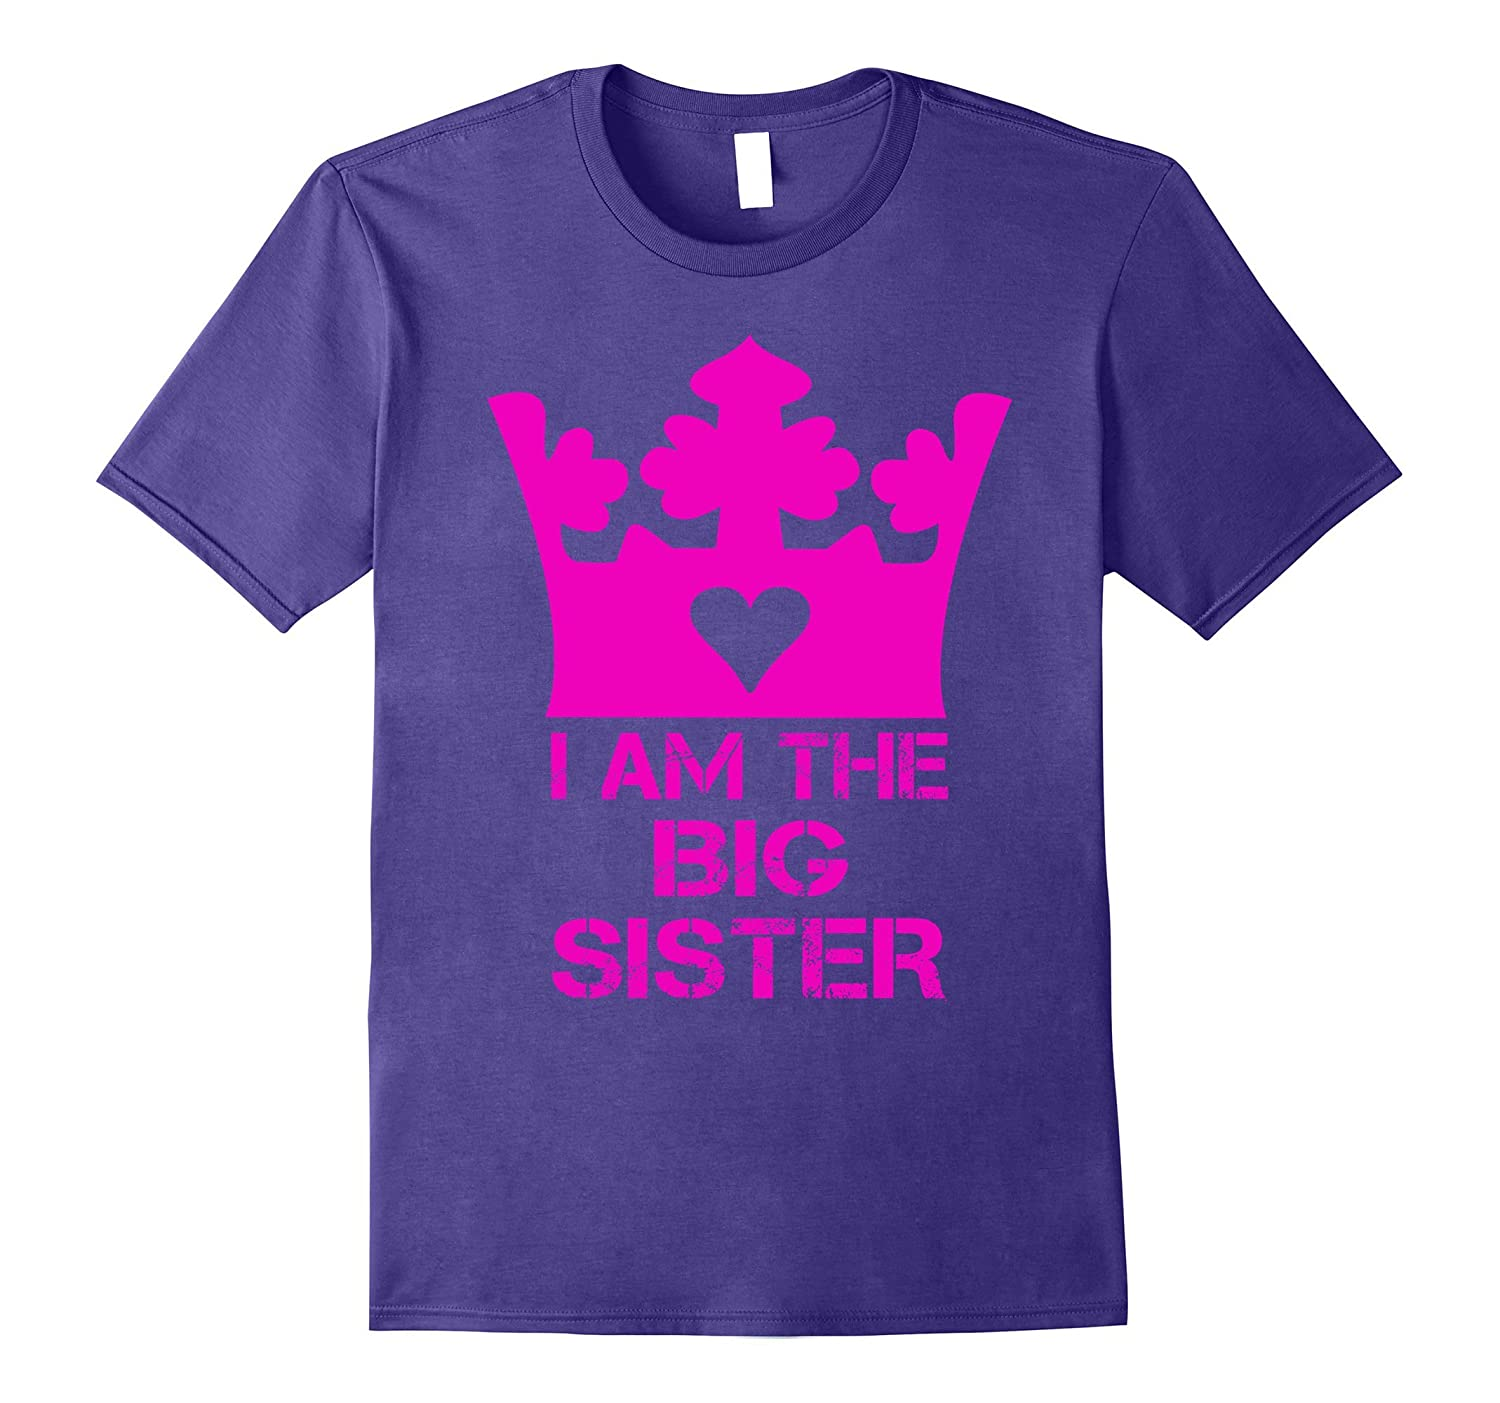 I AM THE BIG SISTER T SHIRT TH